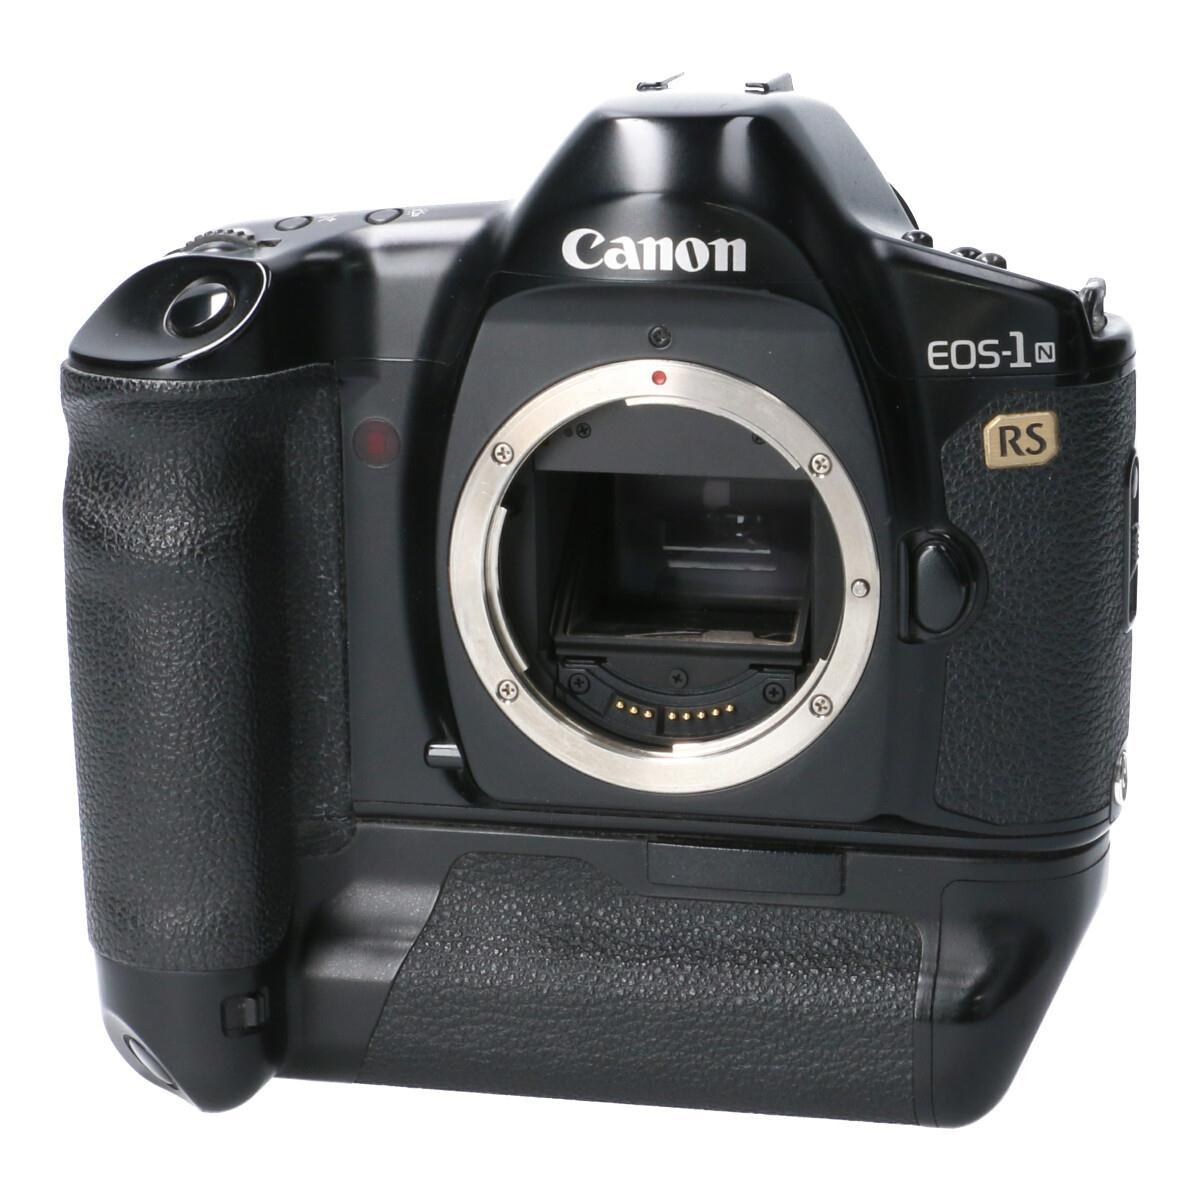 CANON EOS-1N RS【中古】